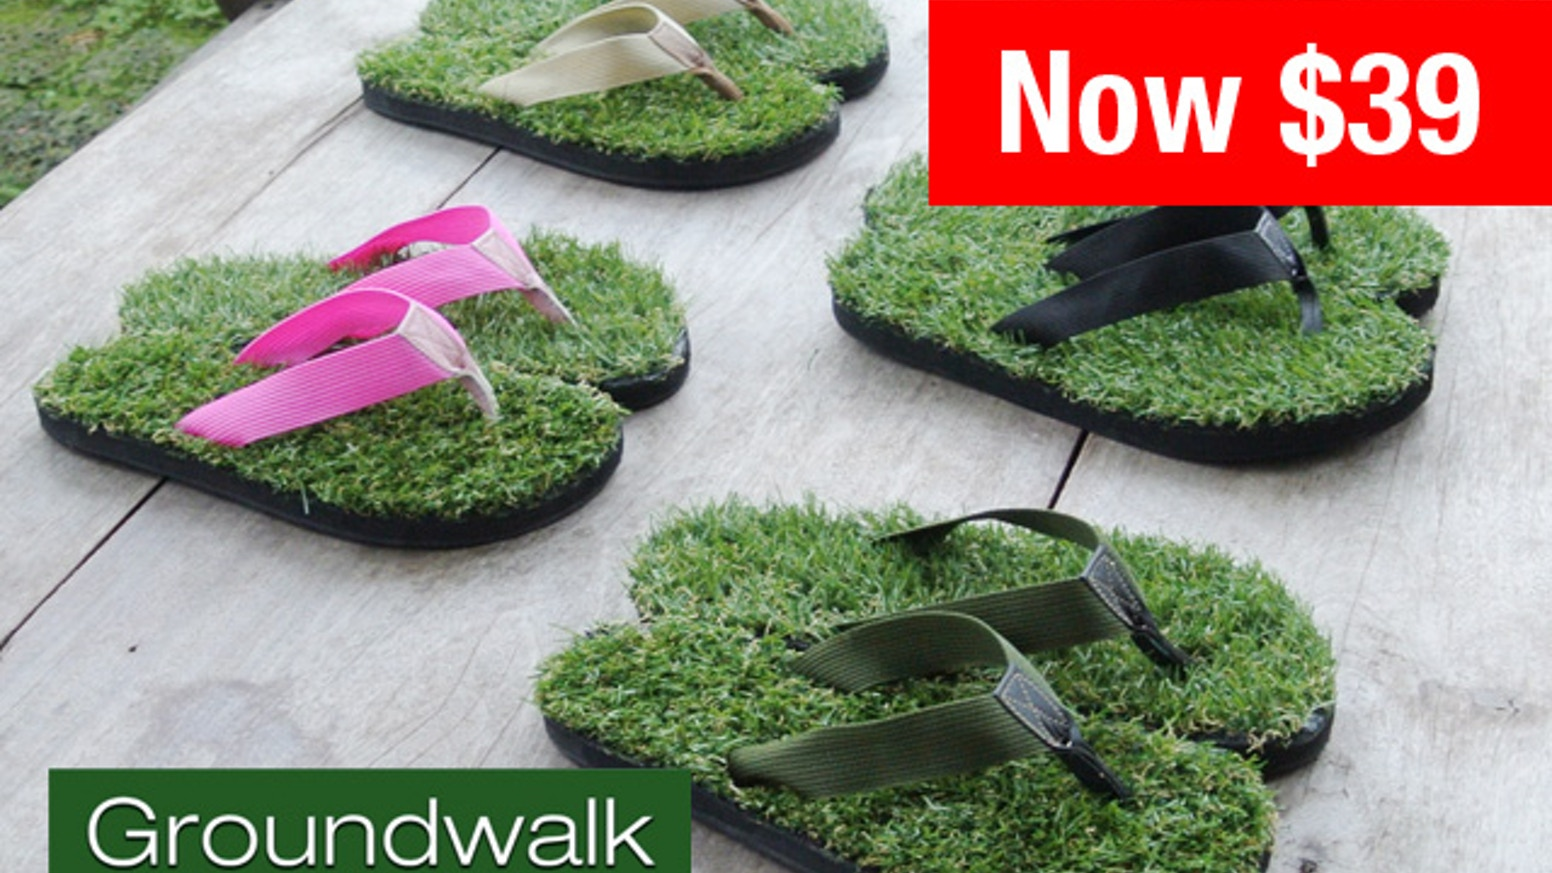 New and improved realistic grass sandals. Soft and comfortable. Groundwalk.com